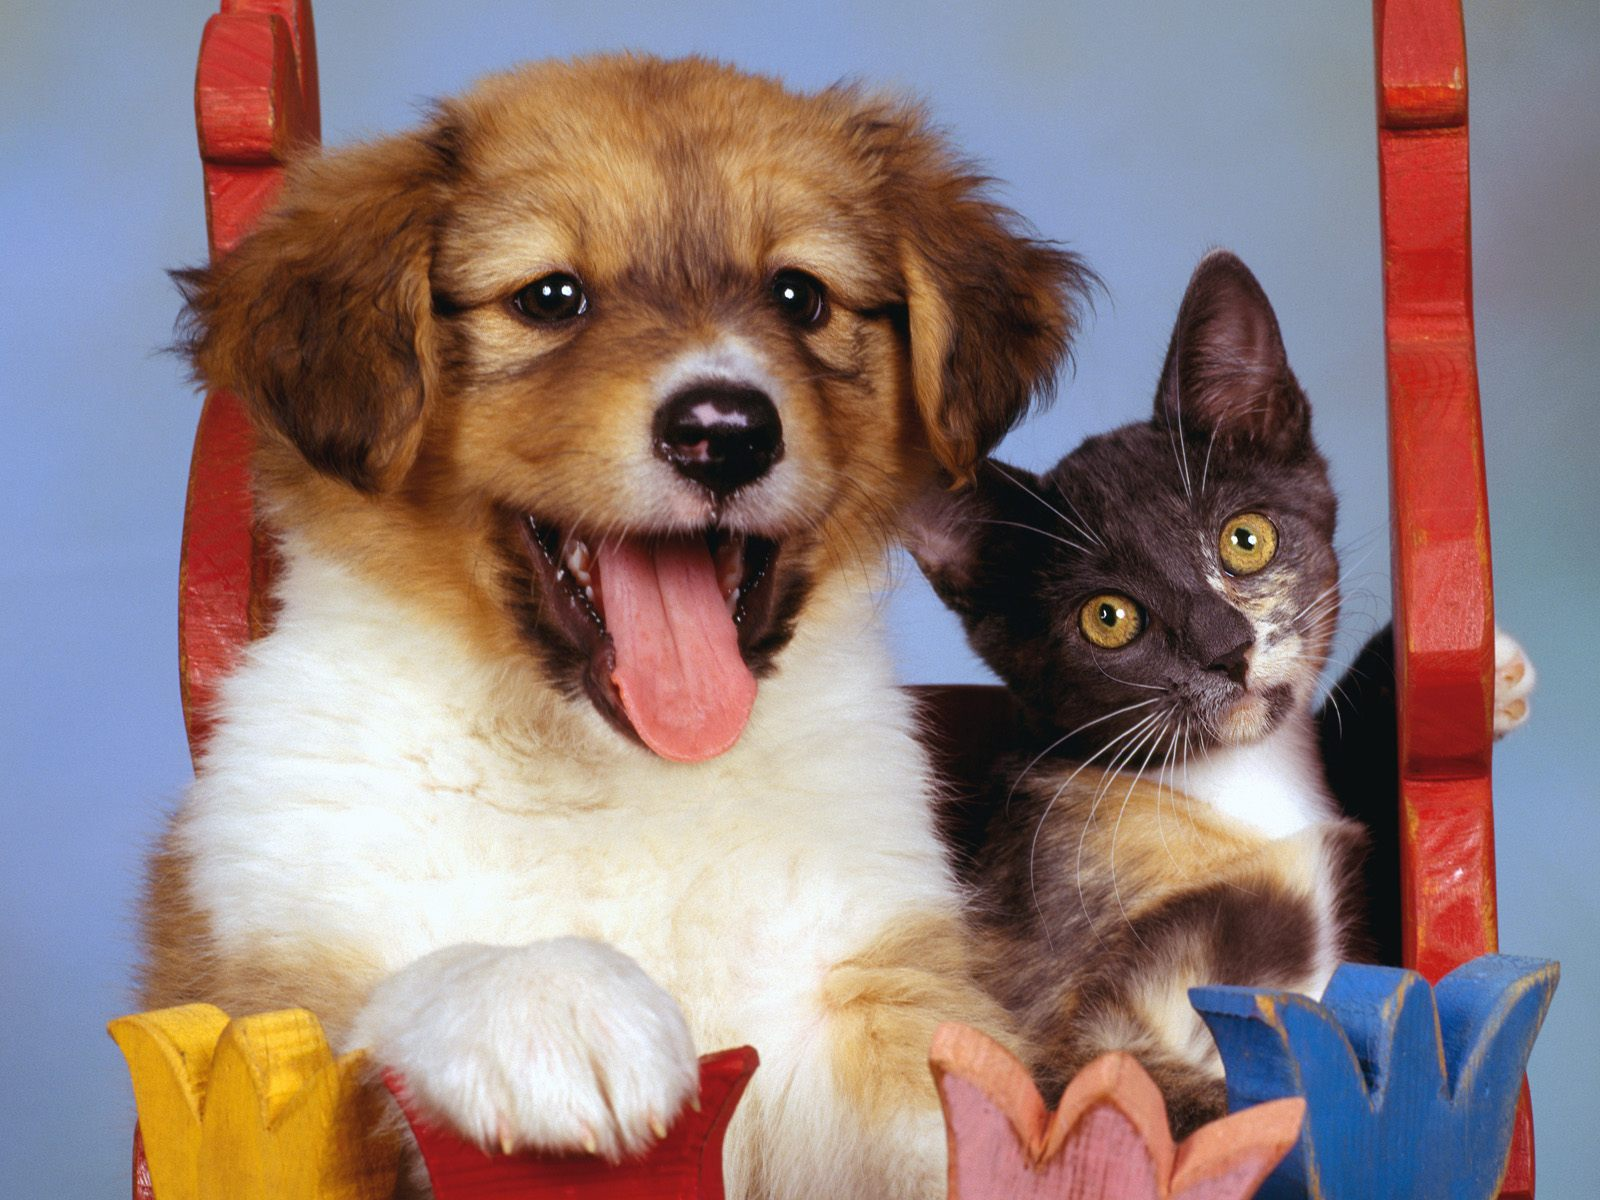 Dogs and Cats Backgrounds Wallpaper and make this wallpaper for your 1600x1200